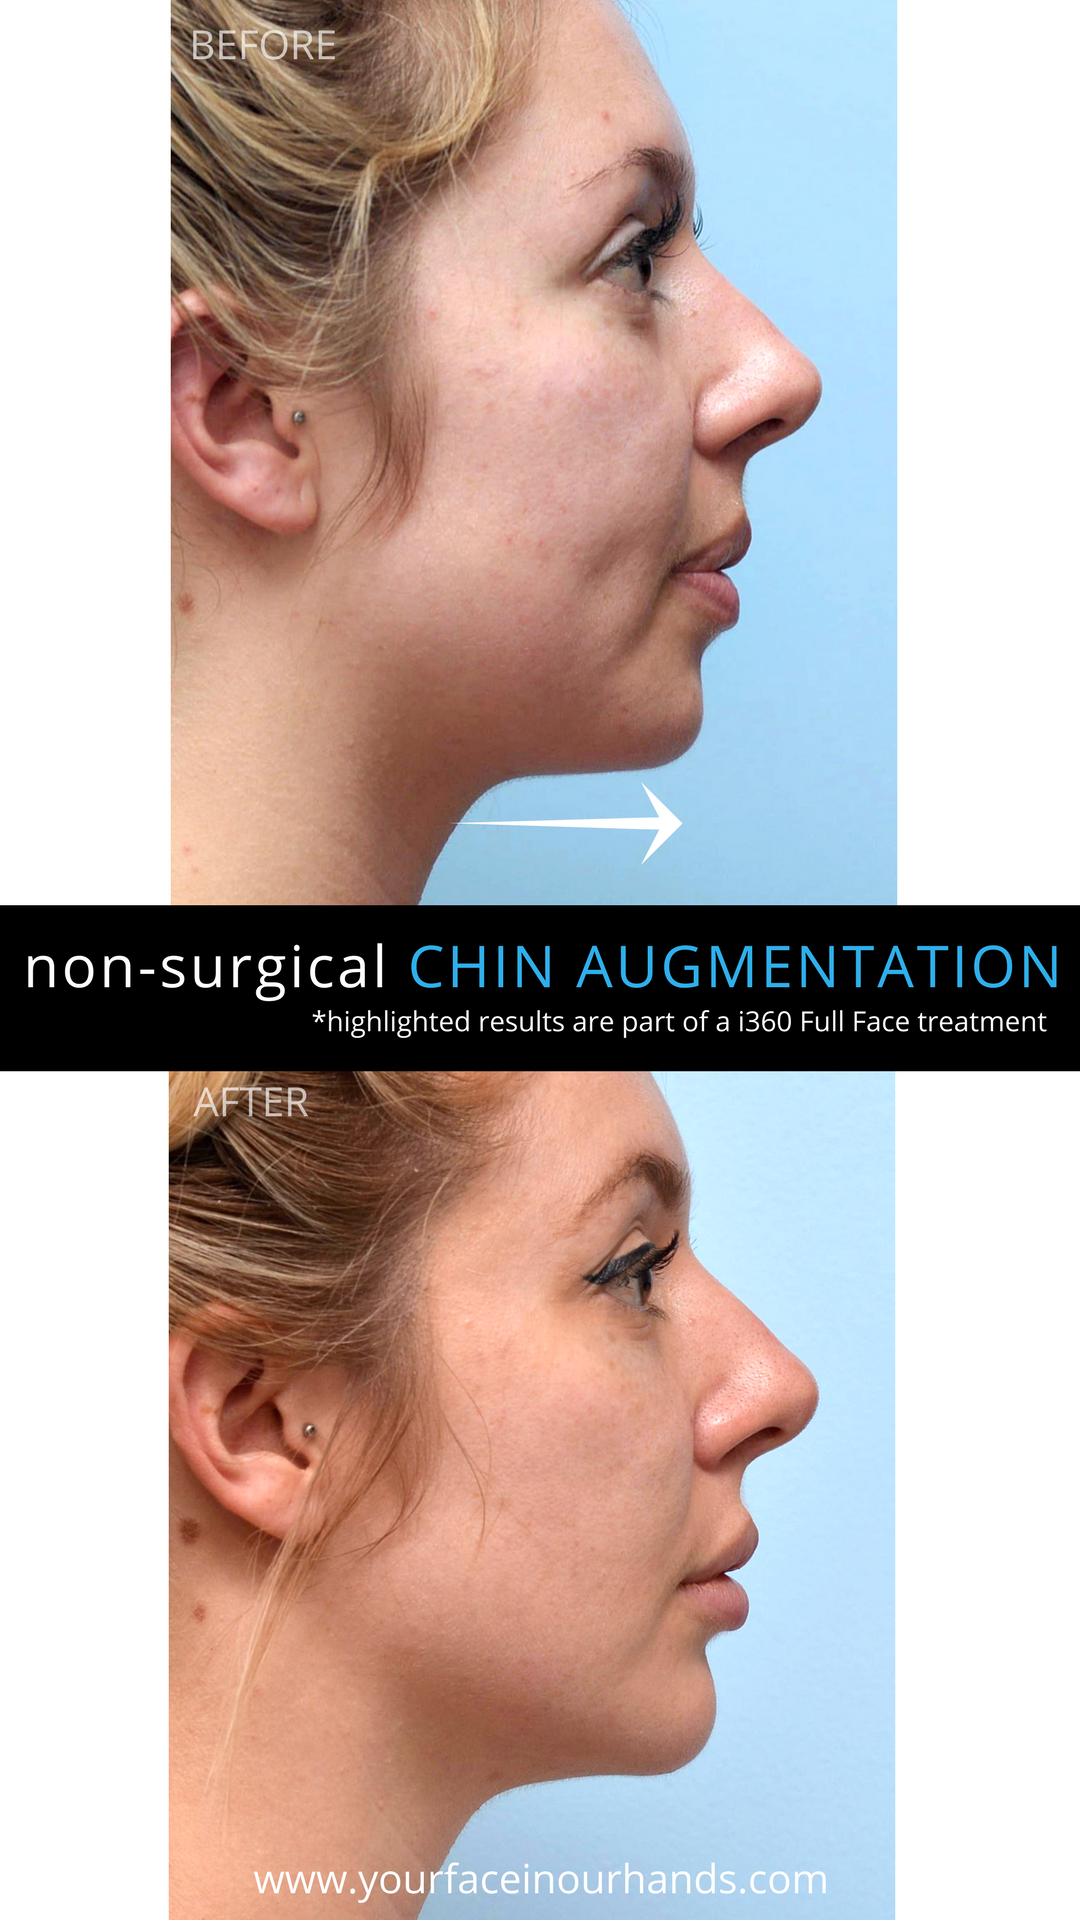 Before And After Results Of A Non Surgical Chin Augmentation With Dermal Fillers Aesthetics Chin Augmentation Facelift Without Surgery Face Plastic Surgery